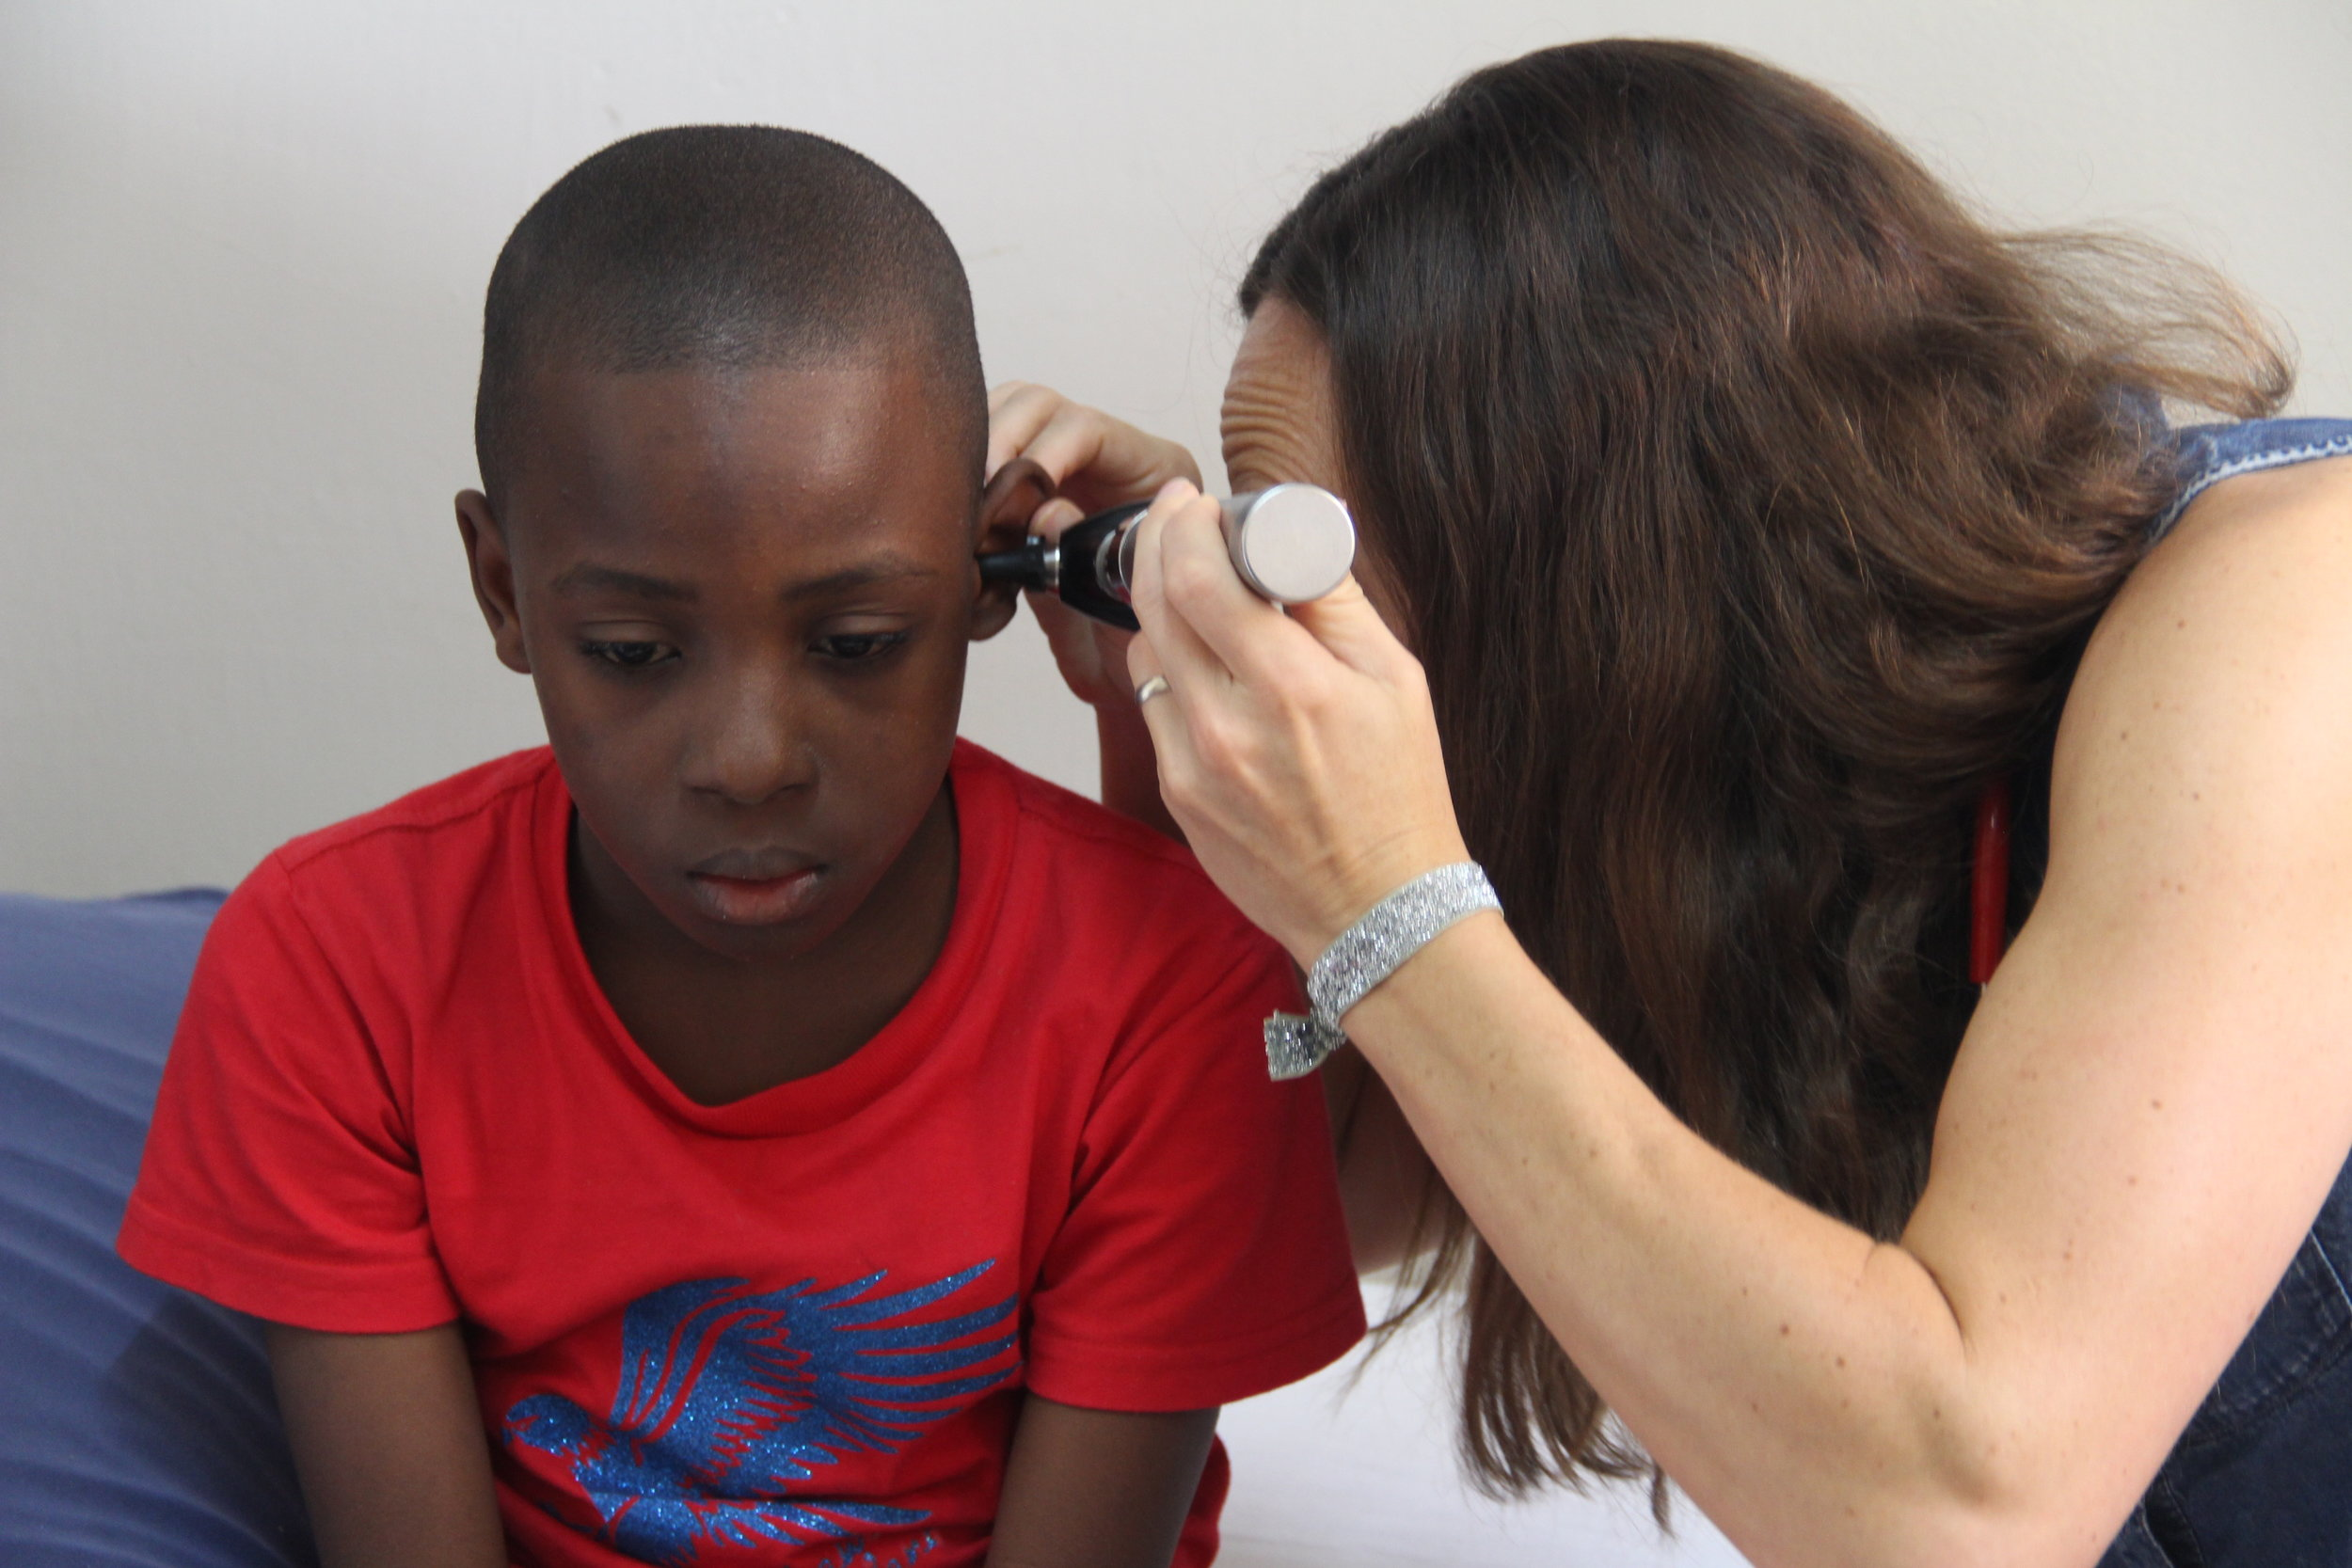 Dakar Academy's physician assistant, Mrs. Lindsay Musser, uses her otoscope to examine a student.